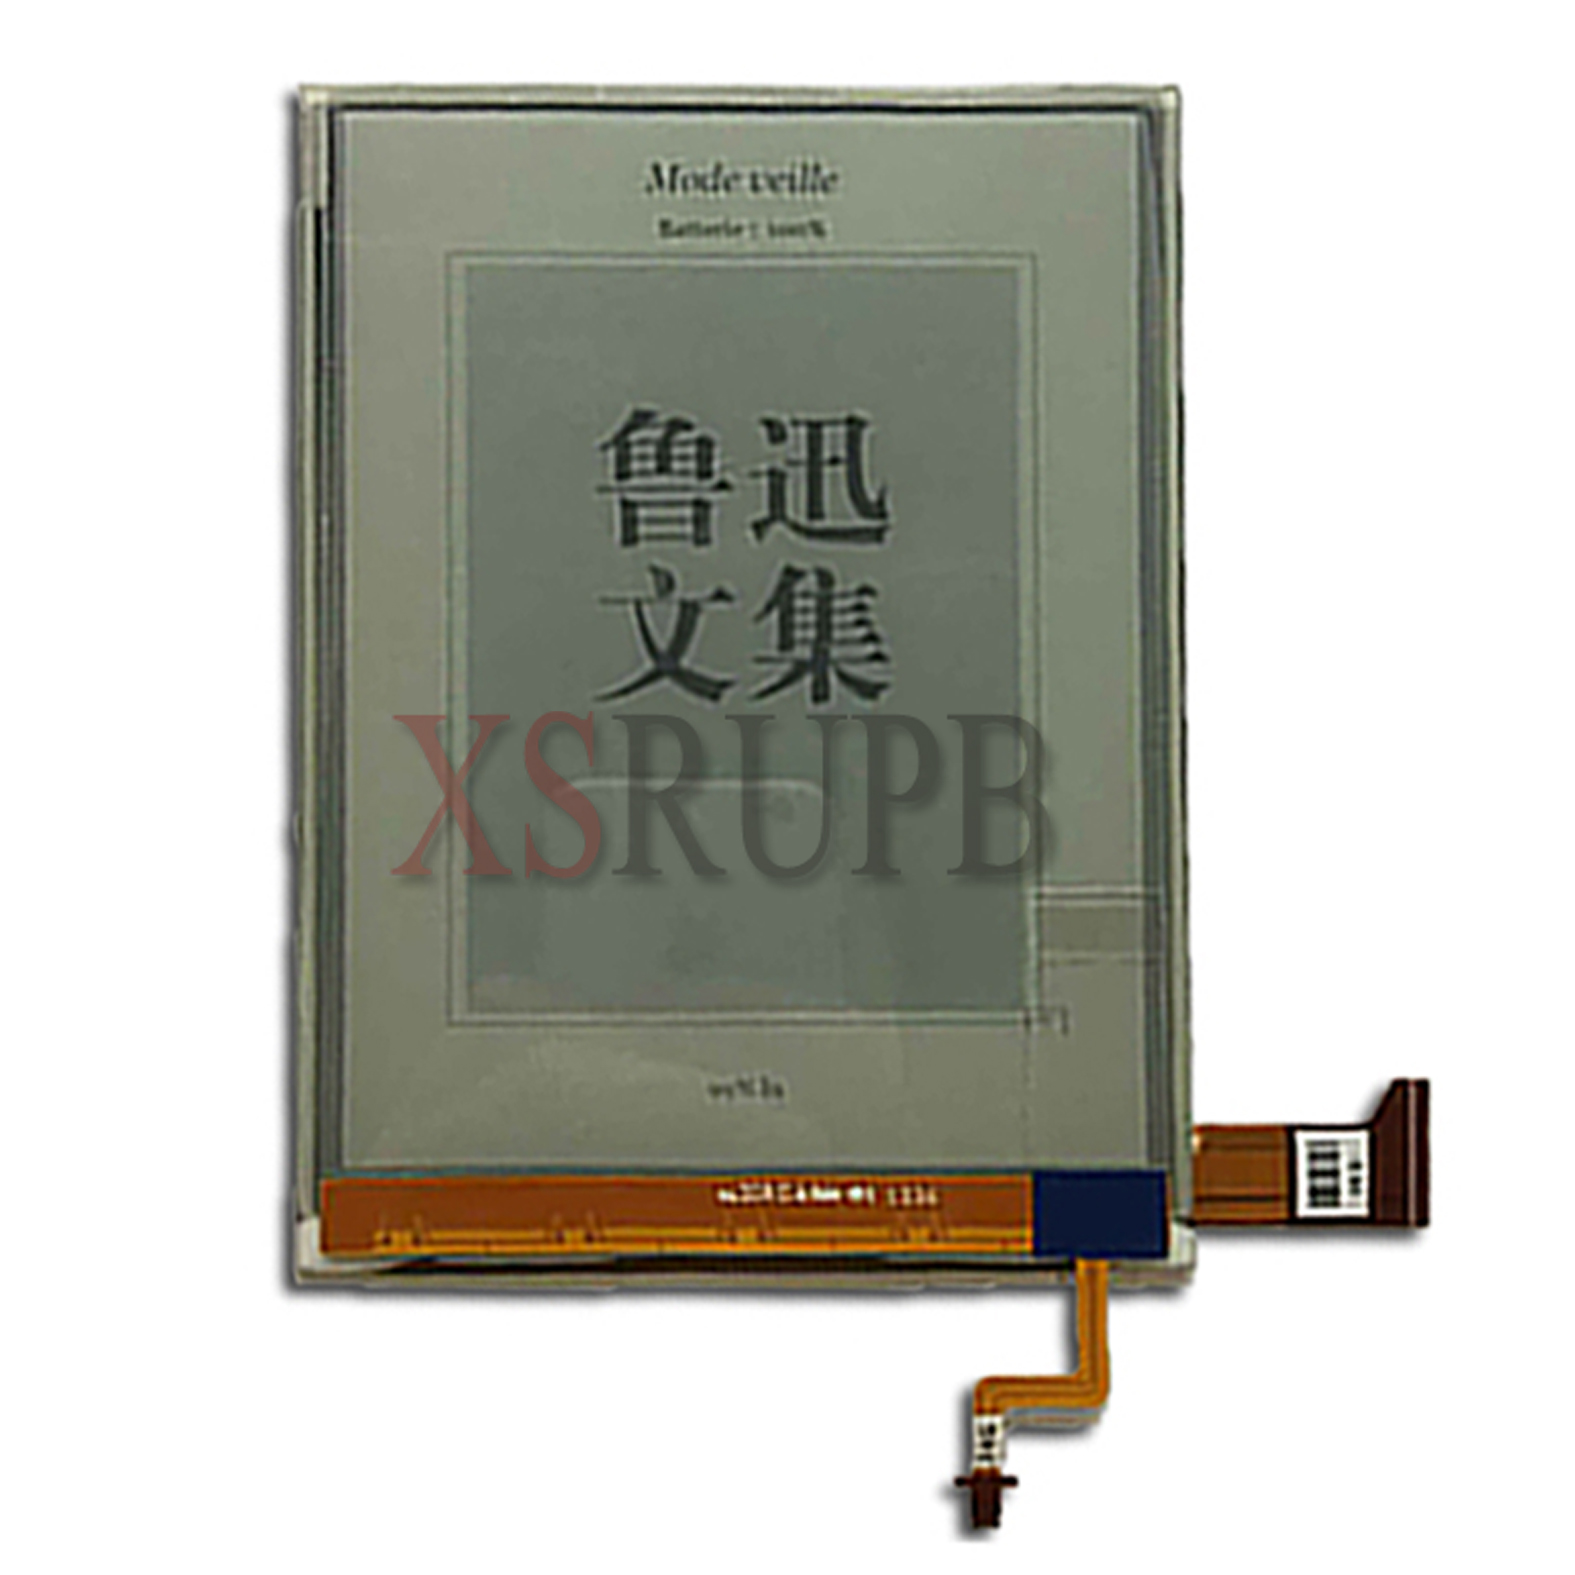 100% original 6 HD E-INK lcd screen With backlight for ONYX BOOX i63SML E-book readers LCD display lcd display screen for onyx boox a61s 6inch 800 600 e book lcd display screen free shipping